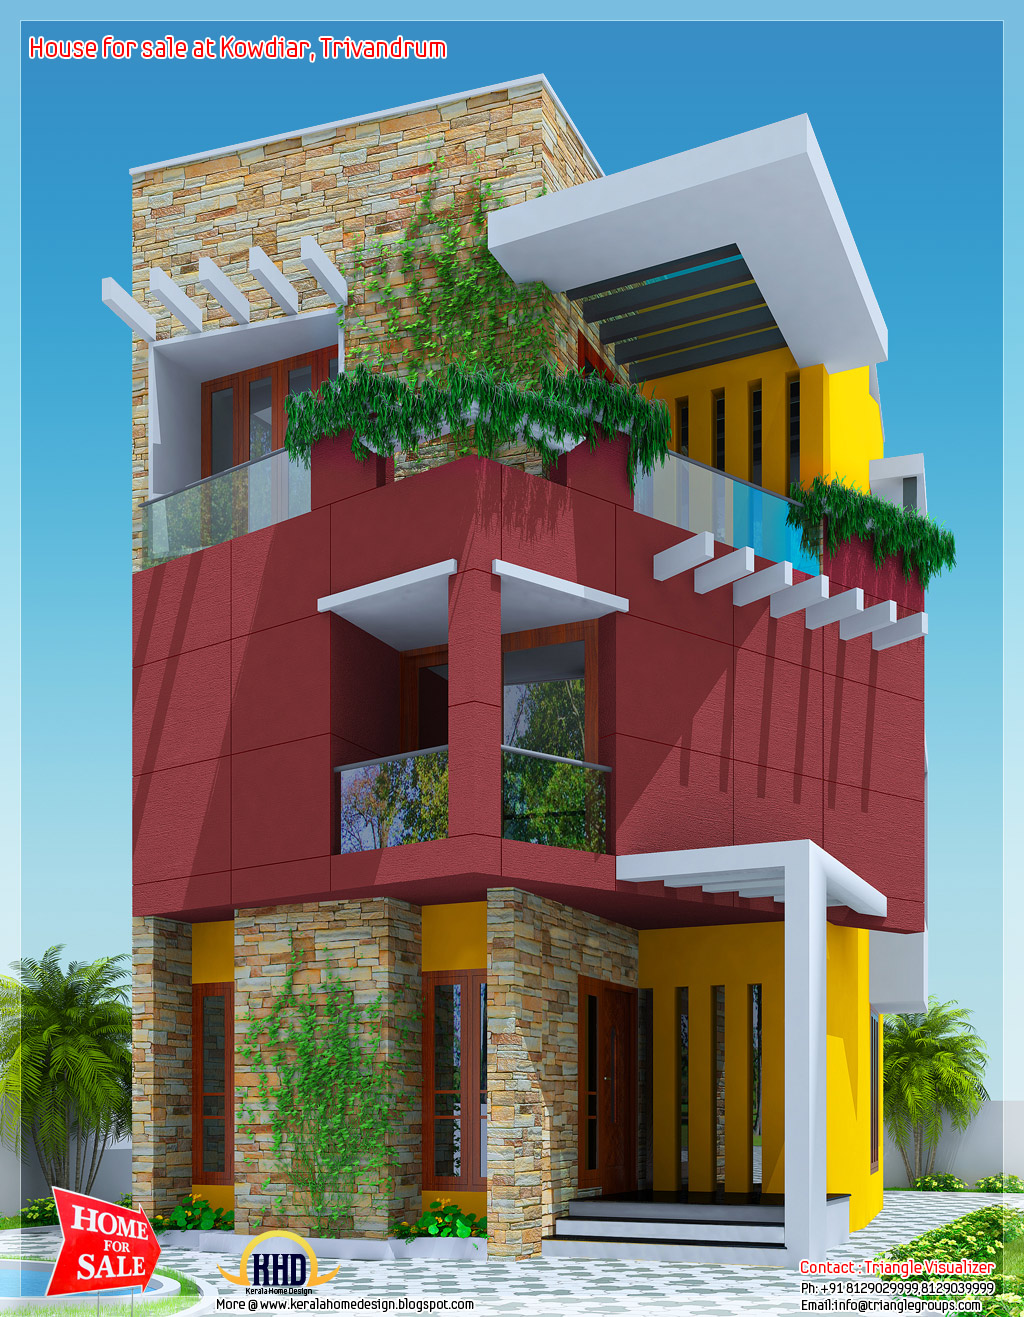 3 floor house for sale at kowdiar trivandrum kerala for House decor sale